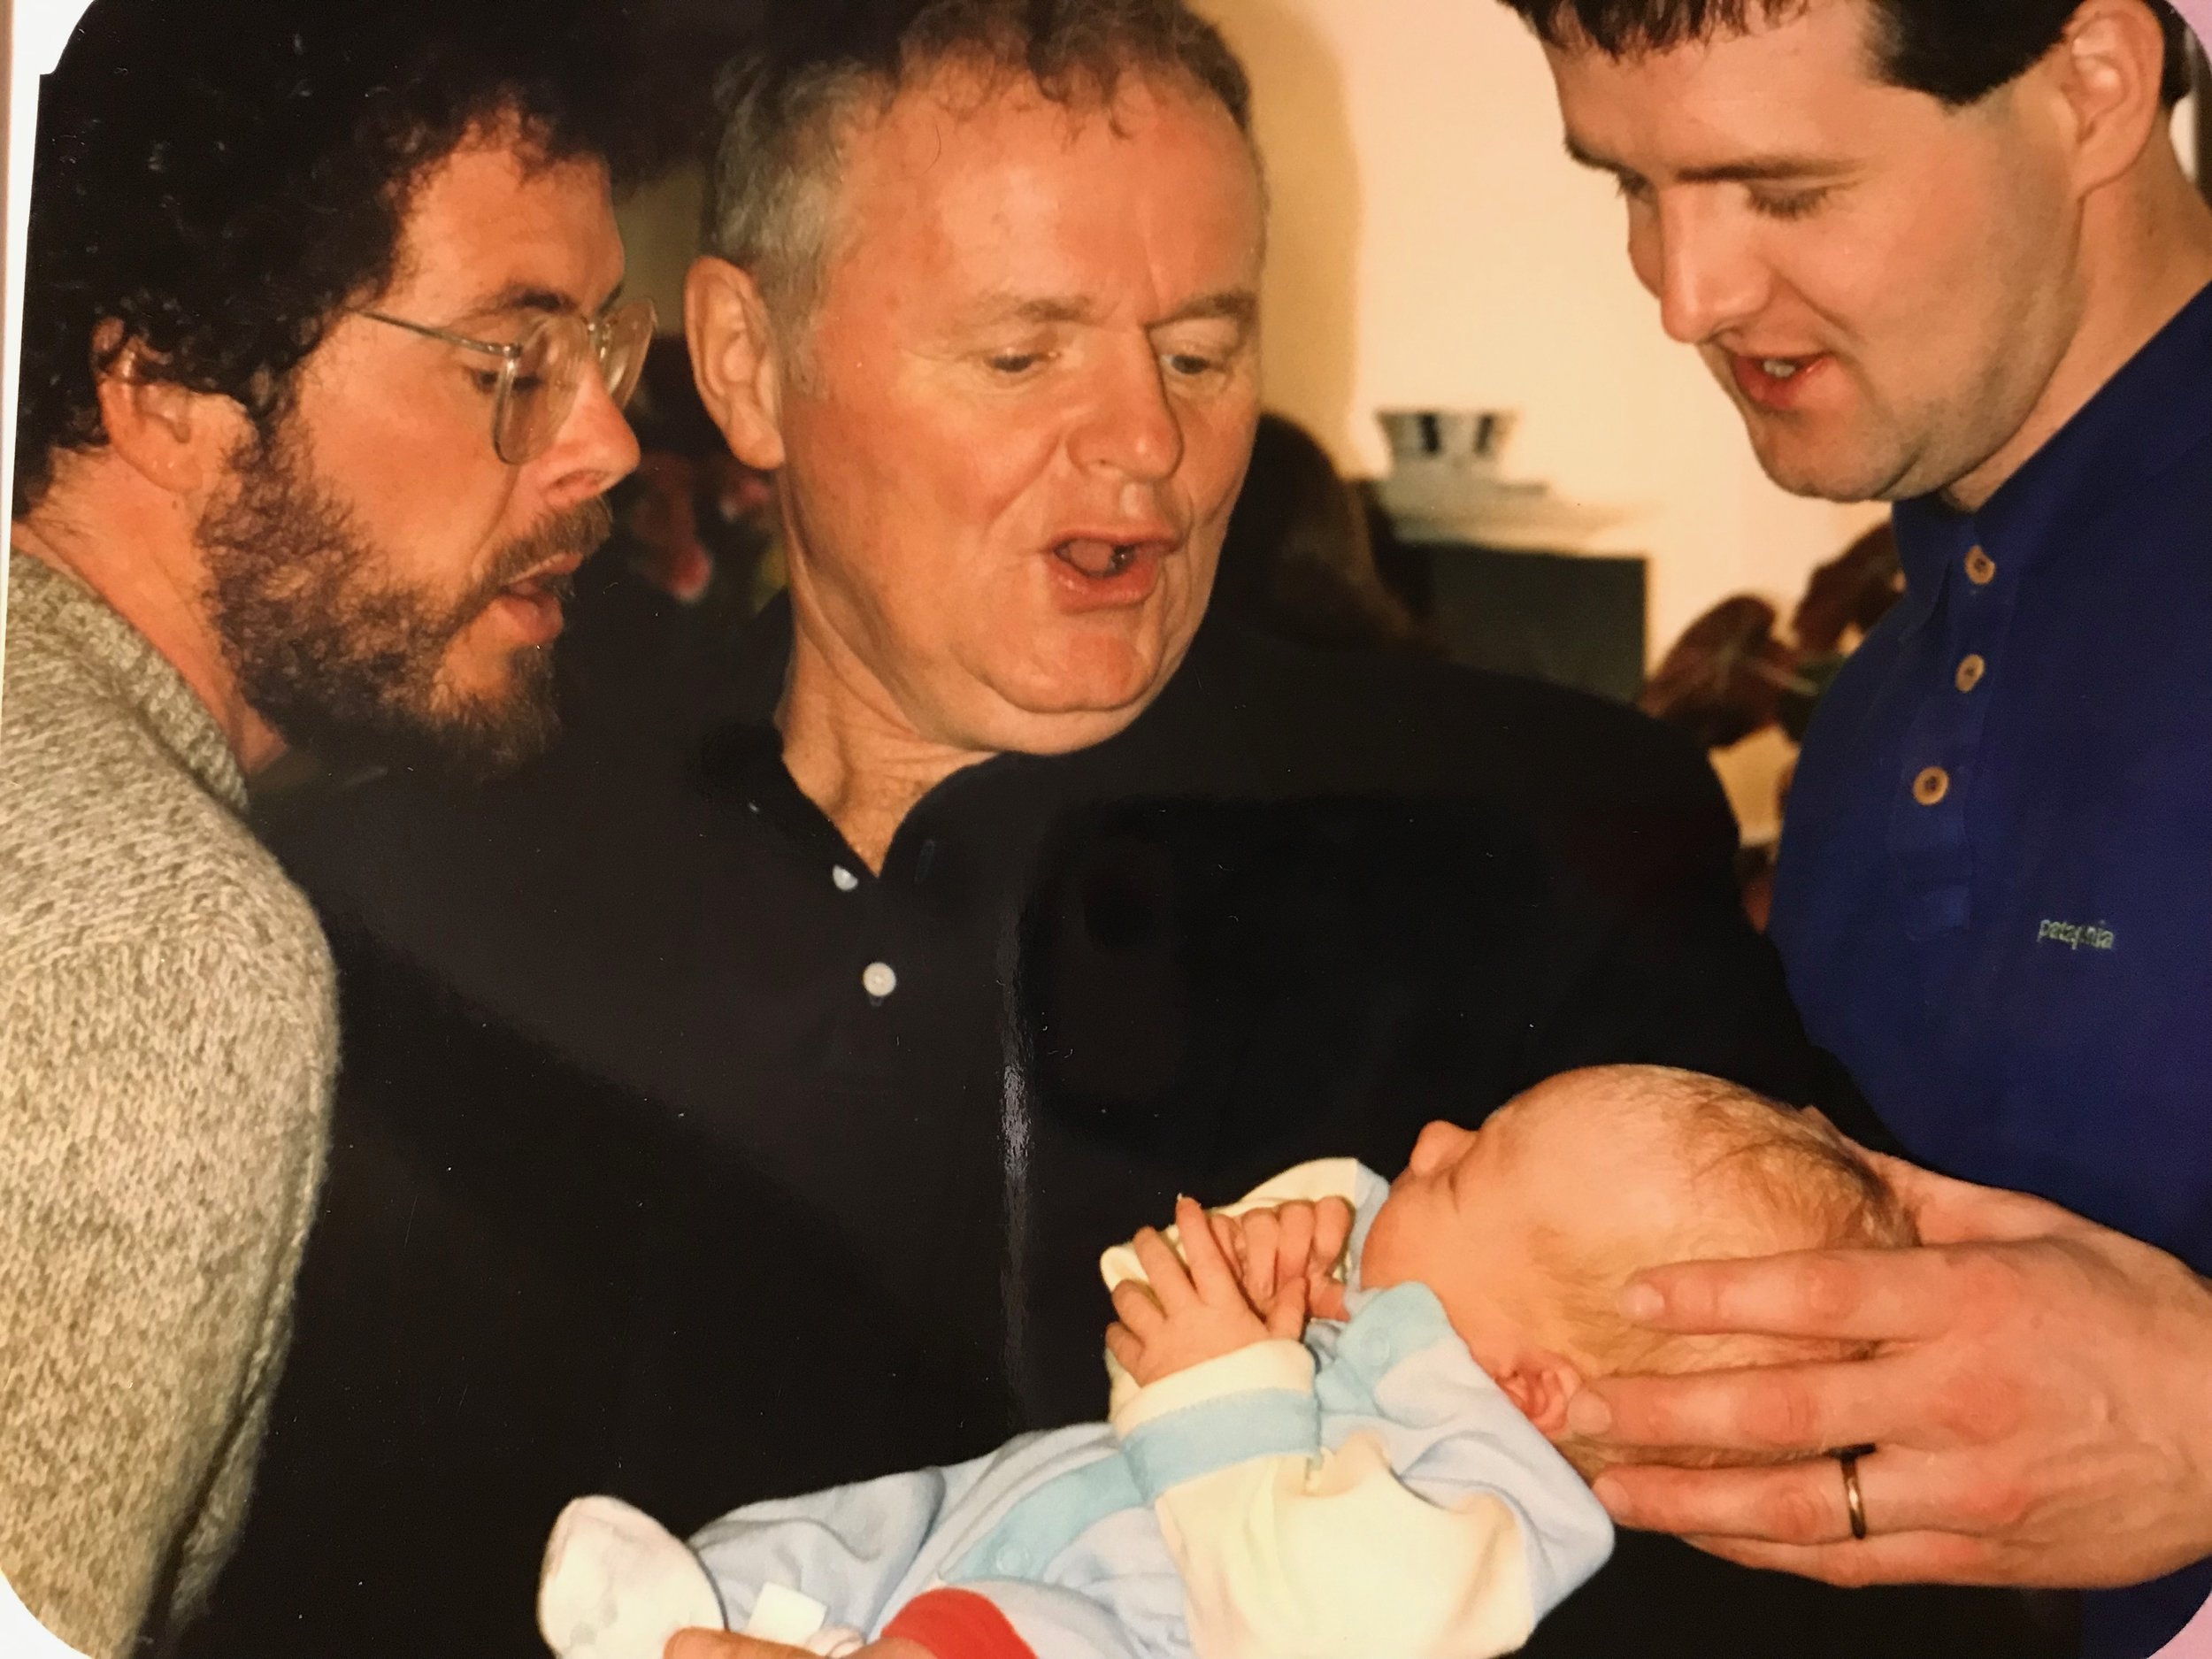 My Uncle Patrick and Grandaddy with baby me